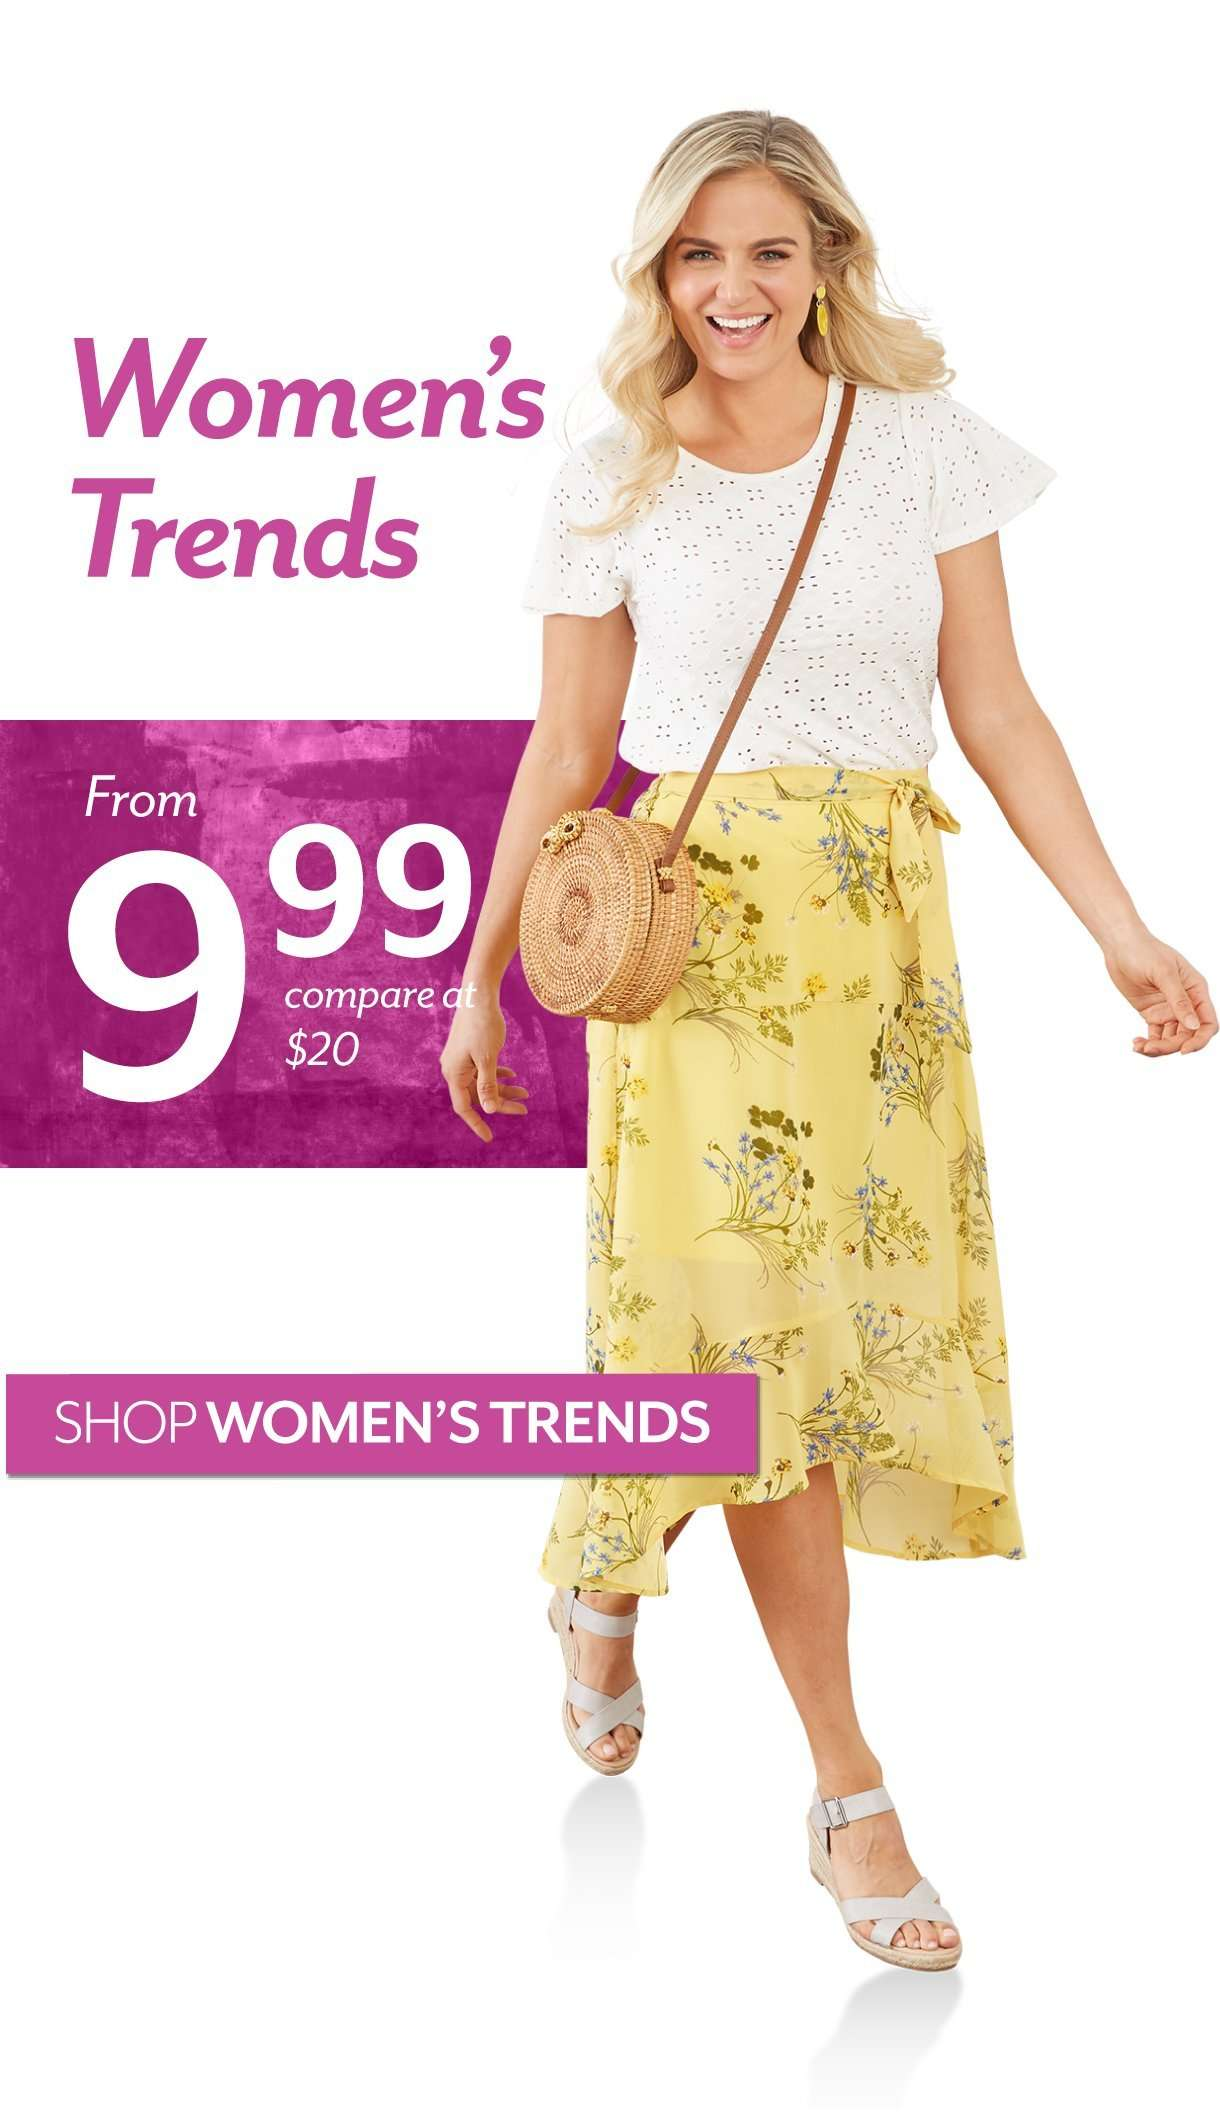 Women's Trends starting at $9.99